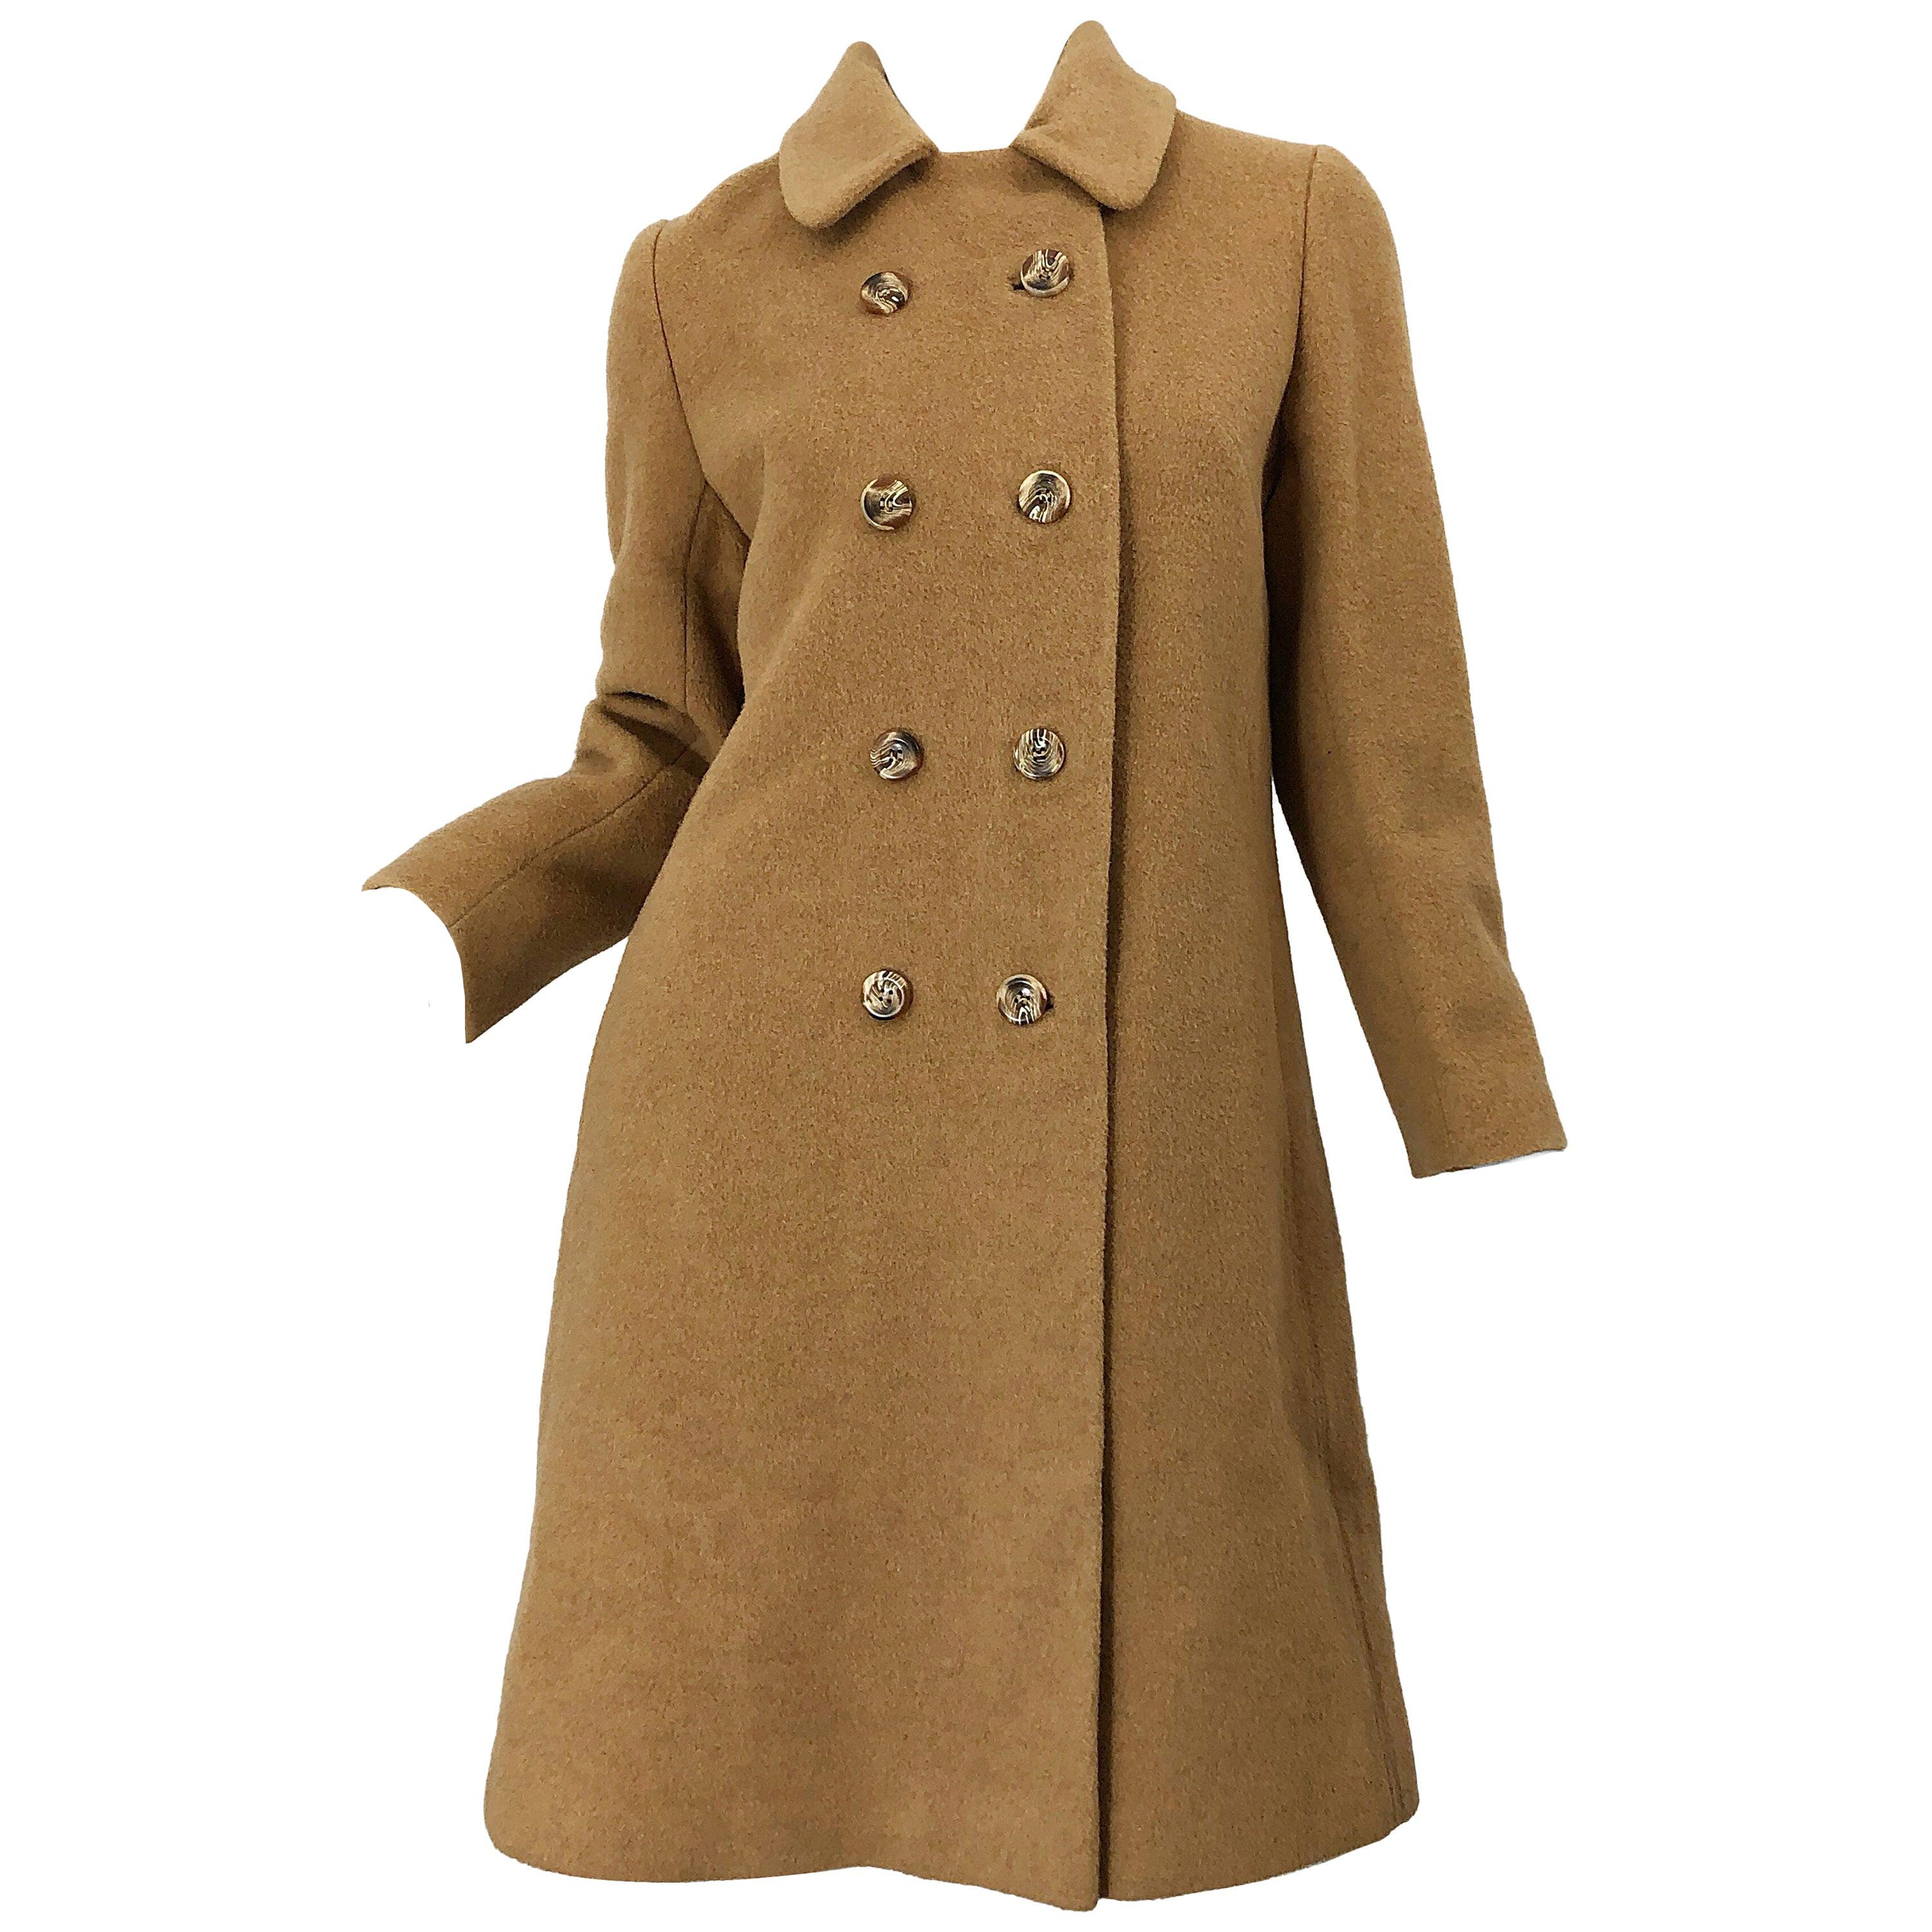 Chic 1960s Camel Tan Camels Hair Wool Double Breasted Vintage Swing Jacket Coat